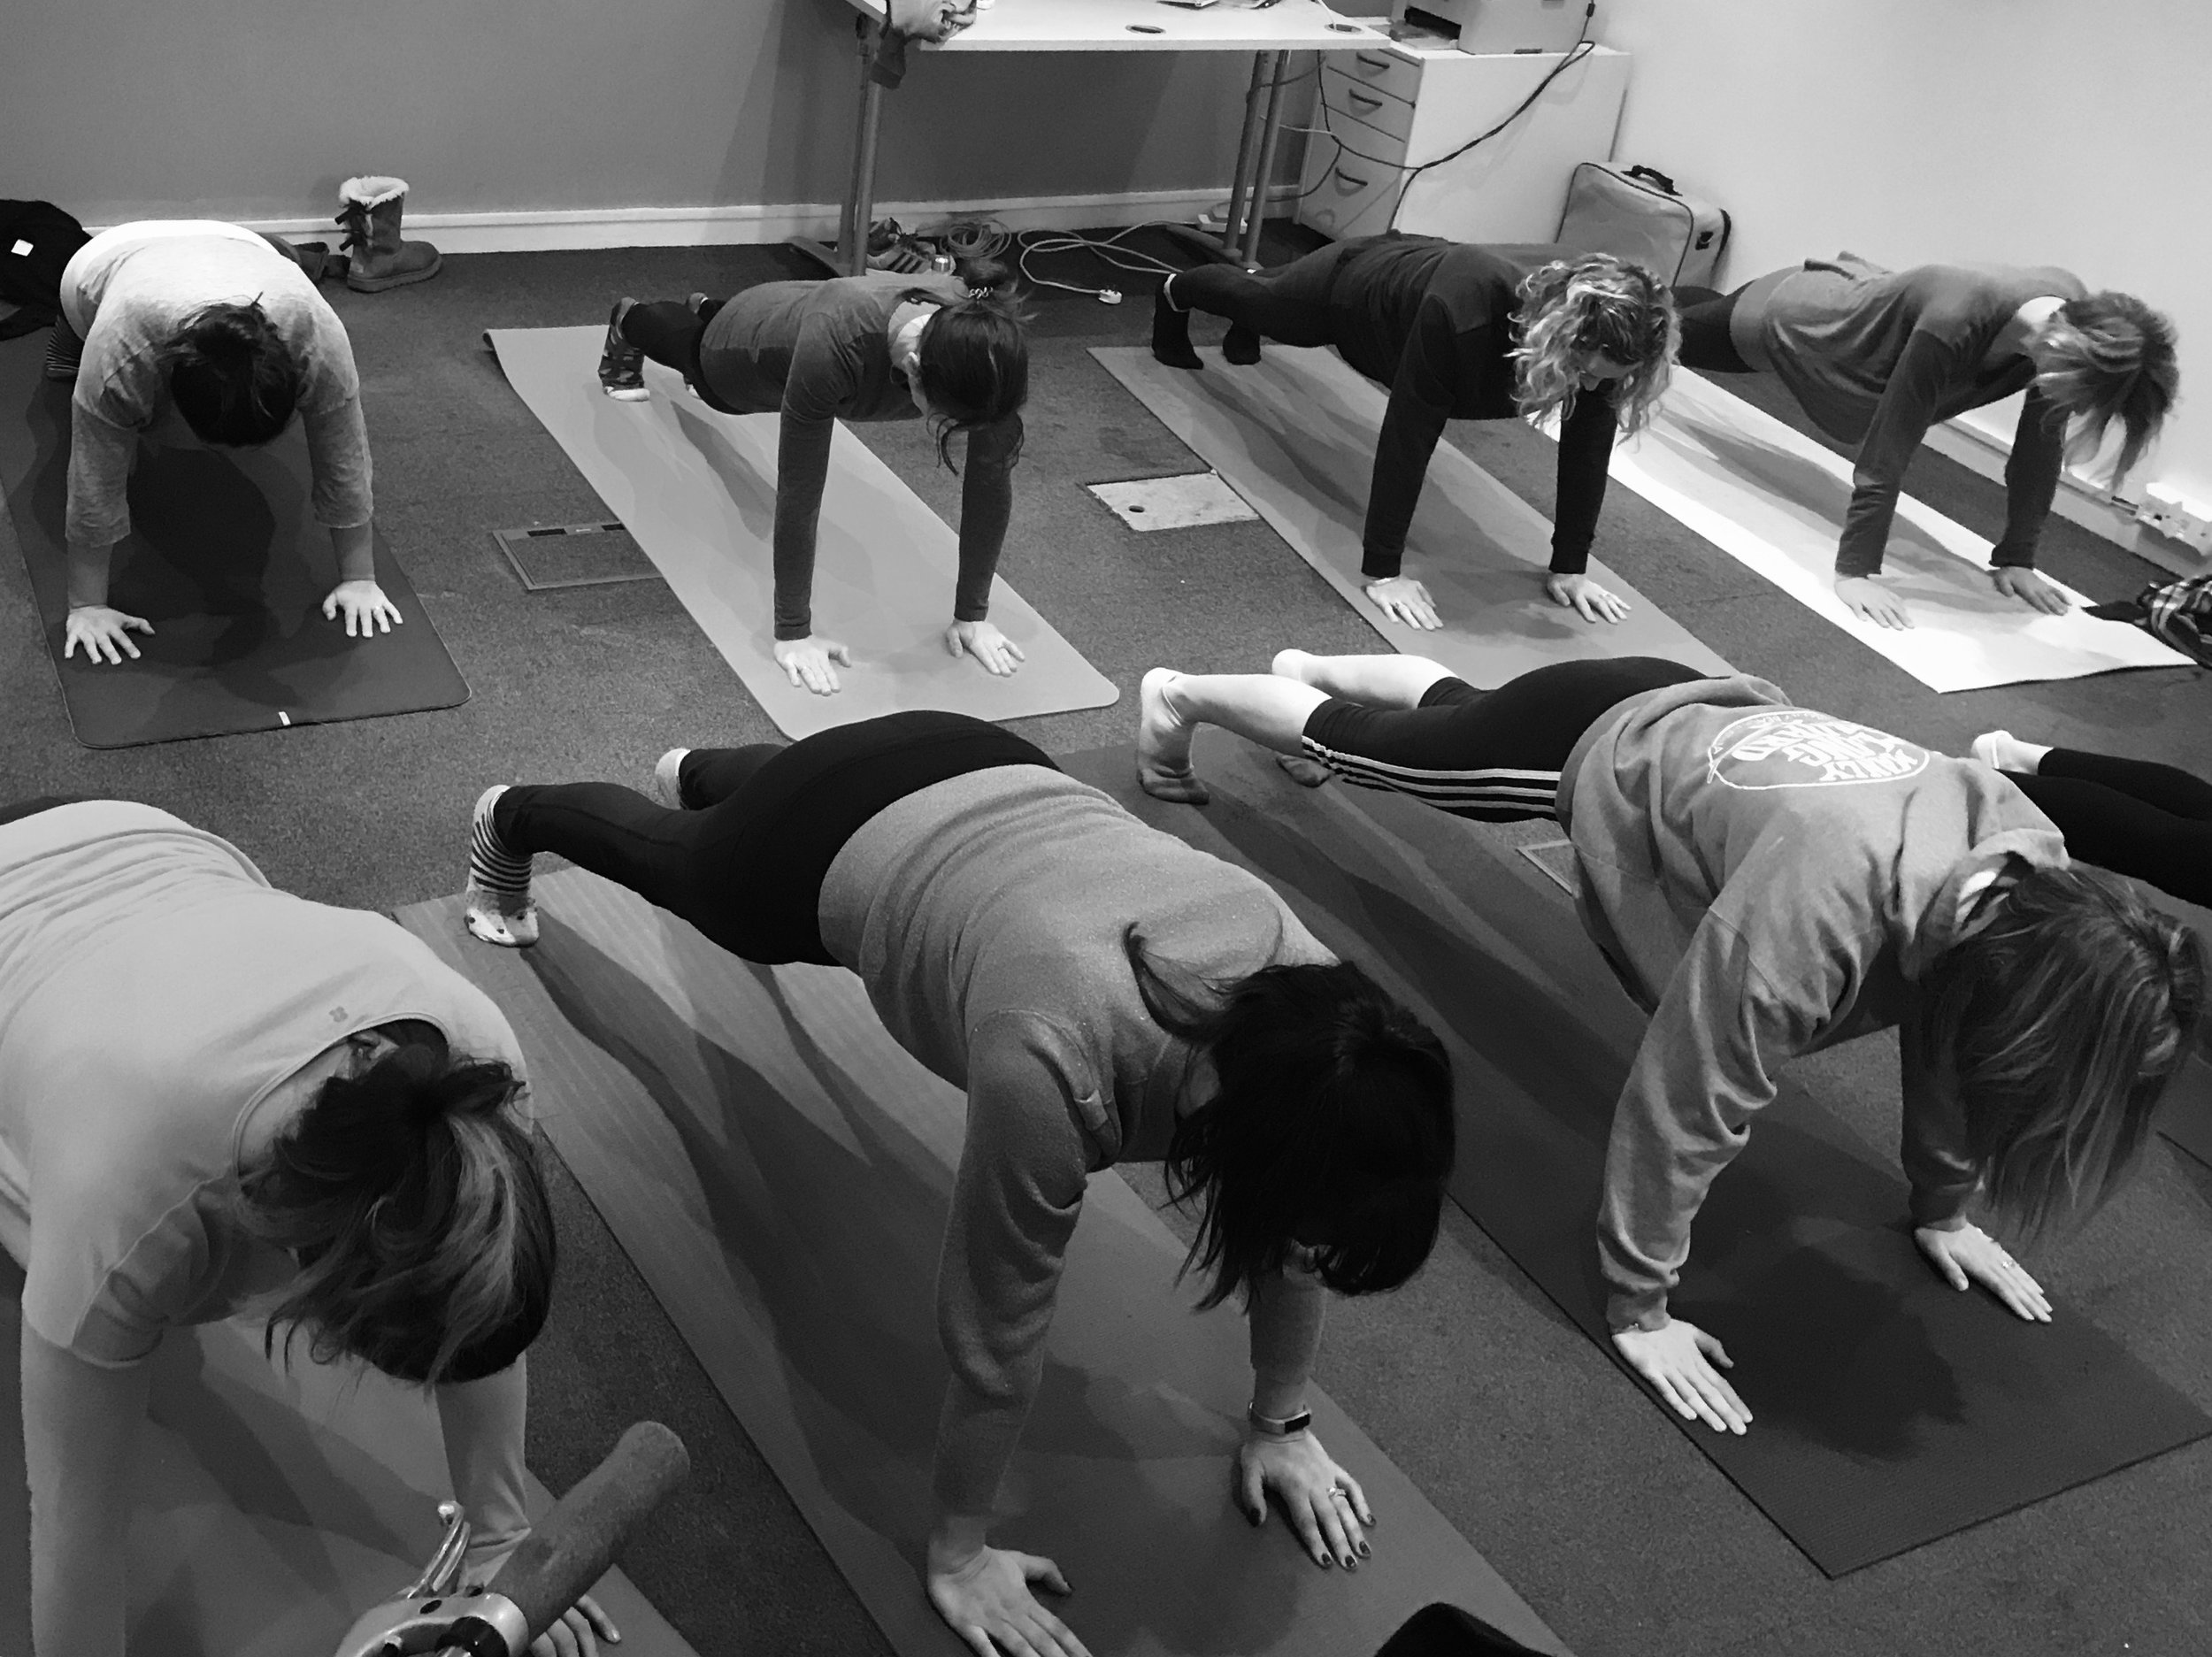 Planety Plank for this lovely team in Earlsfield. Yes, we offer weekly mat classes too!